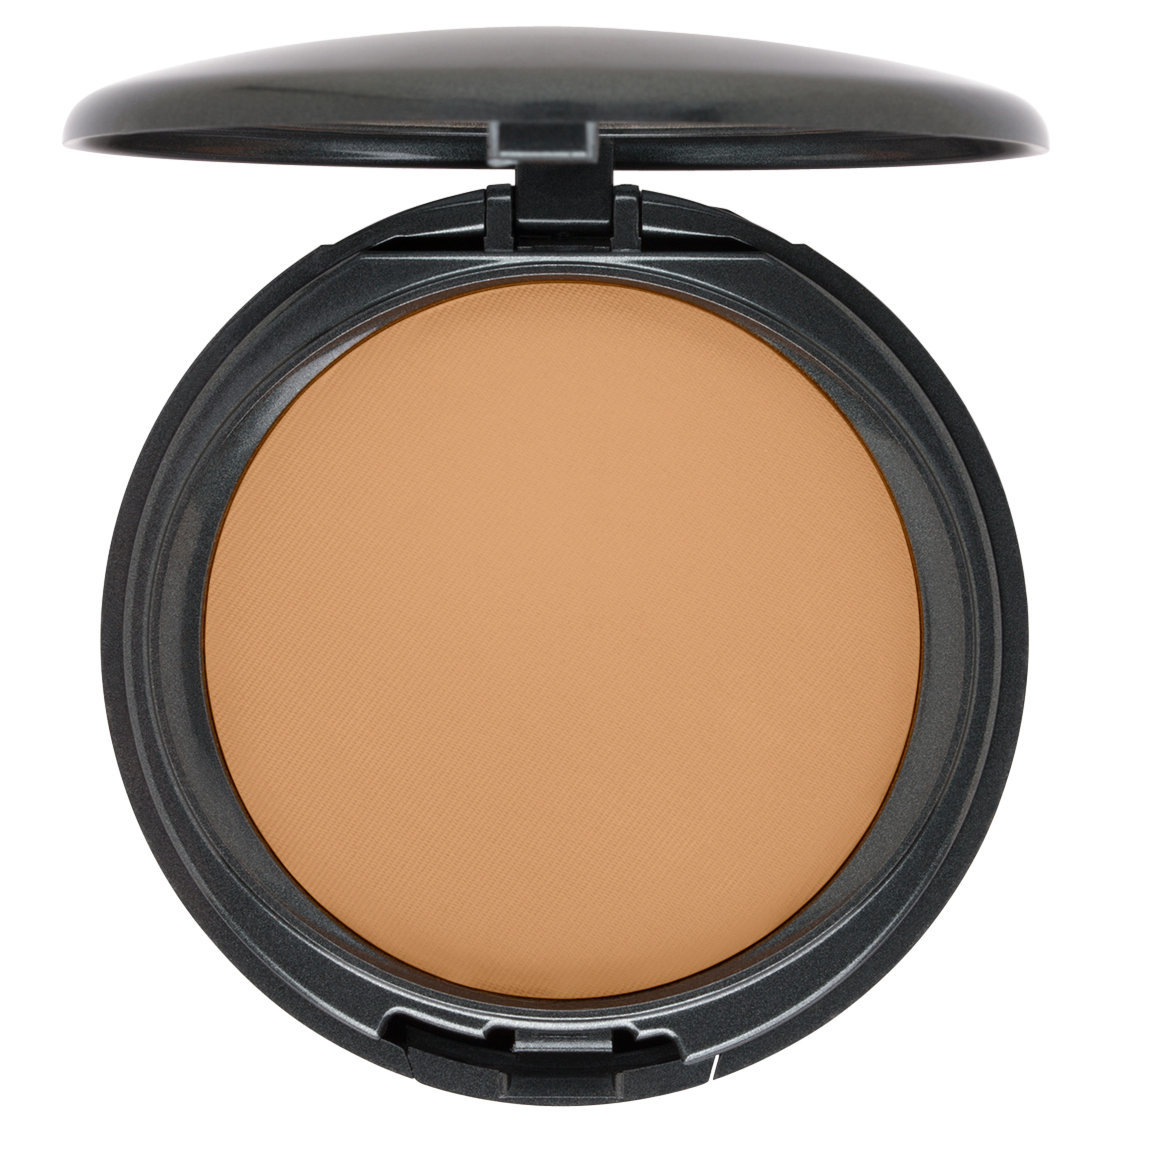 COVER   FX Pressed Mineral Foundation G40 product swatch.